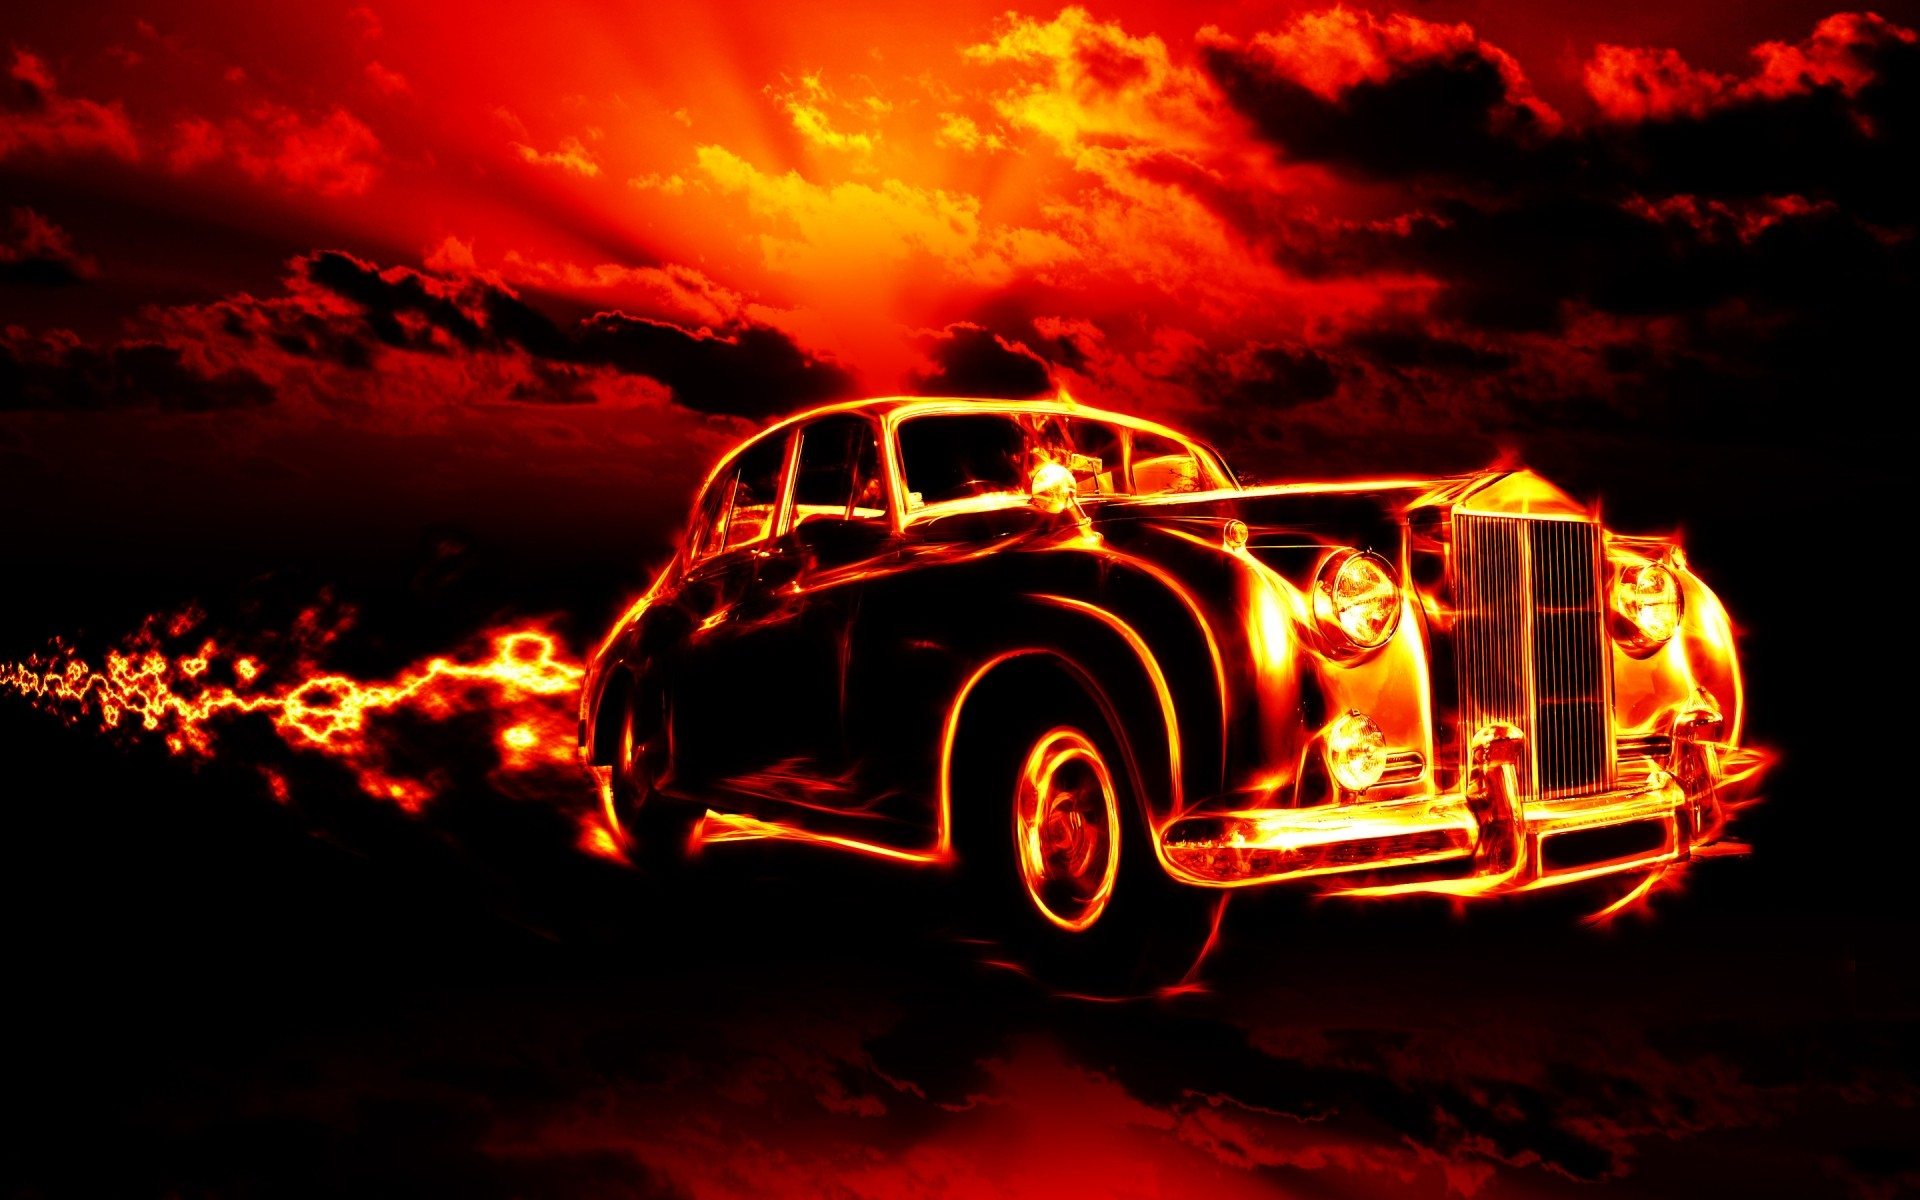 Vintage Car In Fire Android Wallpapers For Free